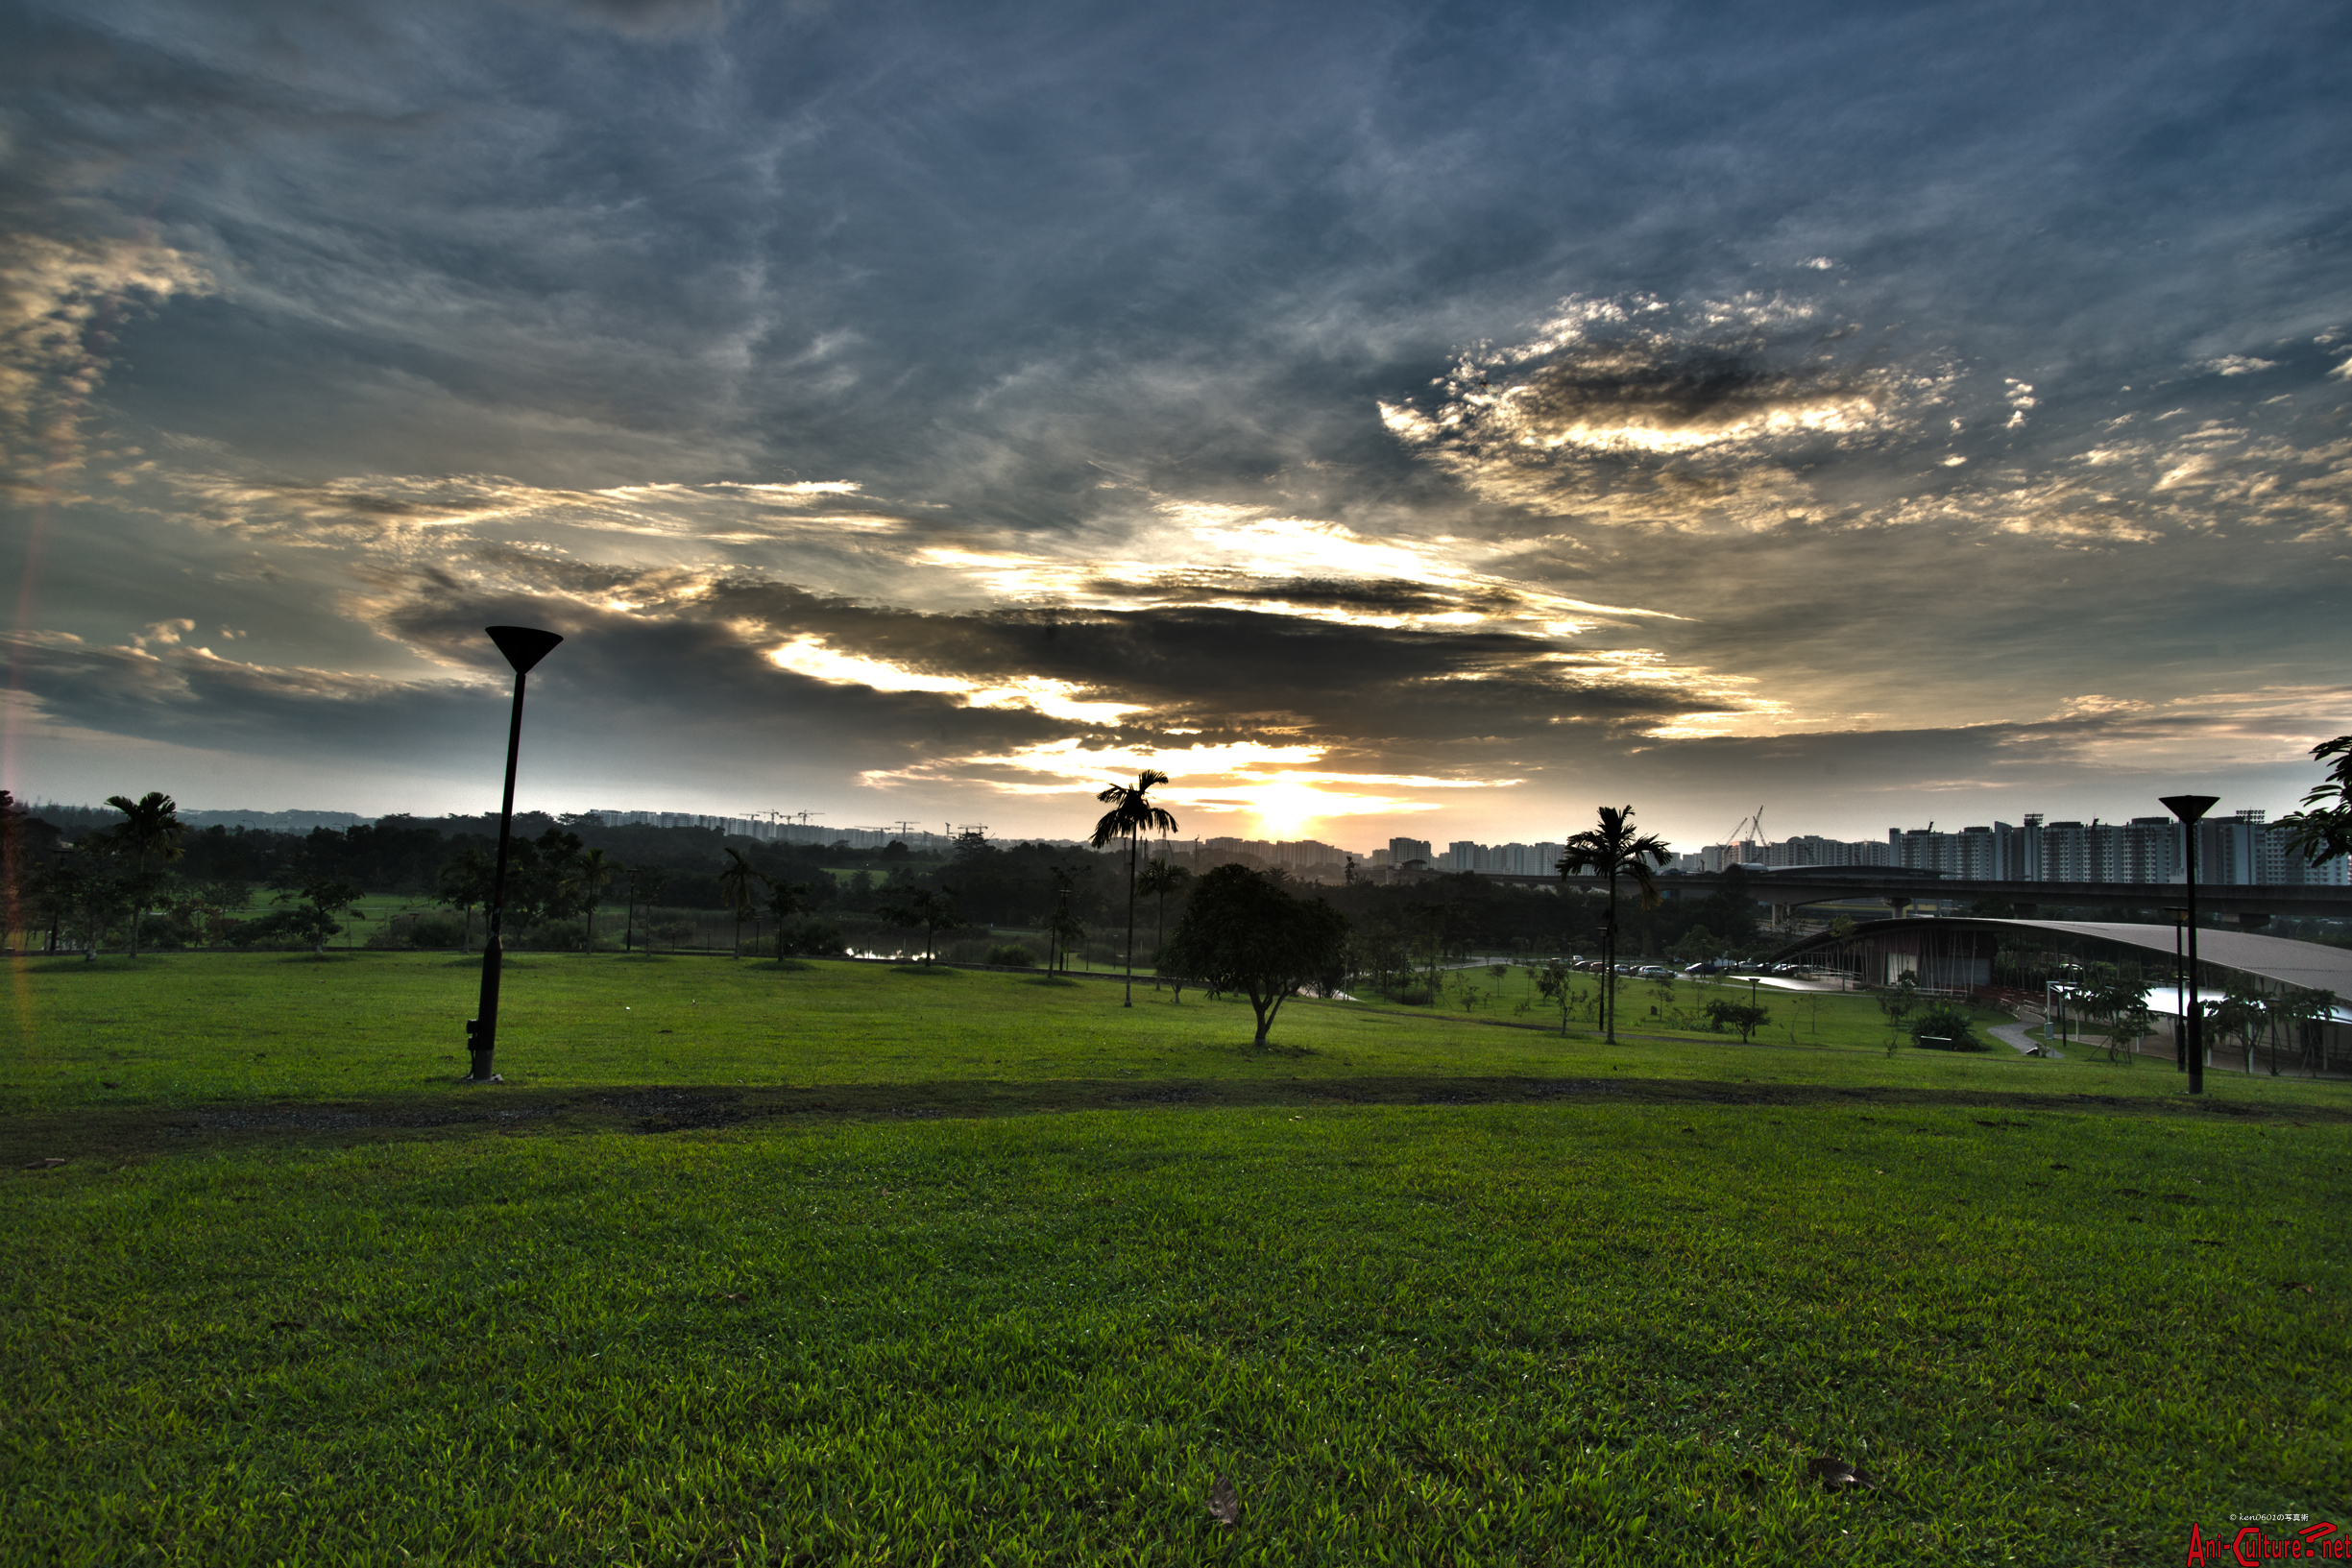 SG: Early morning in Sengkang Riverside Park.